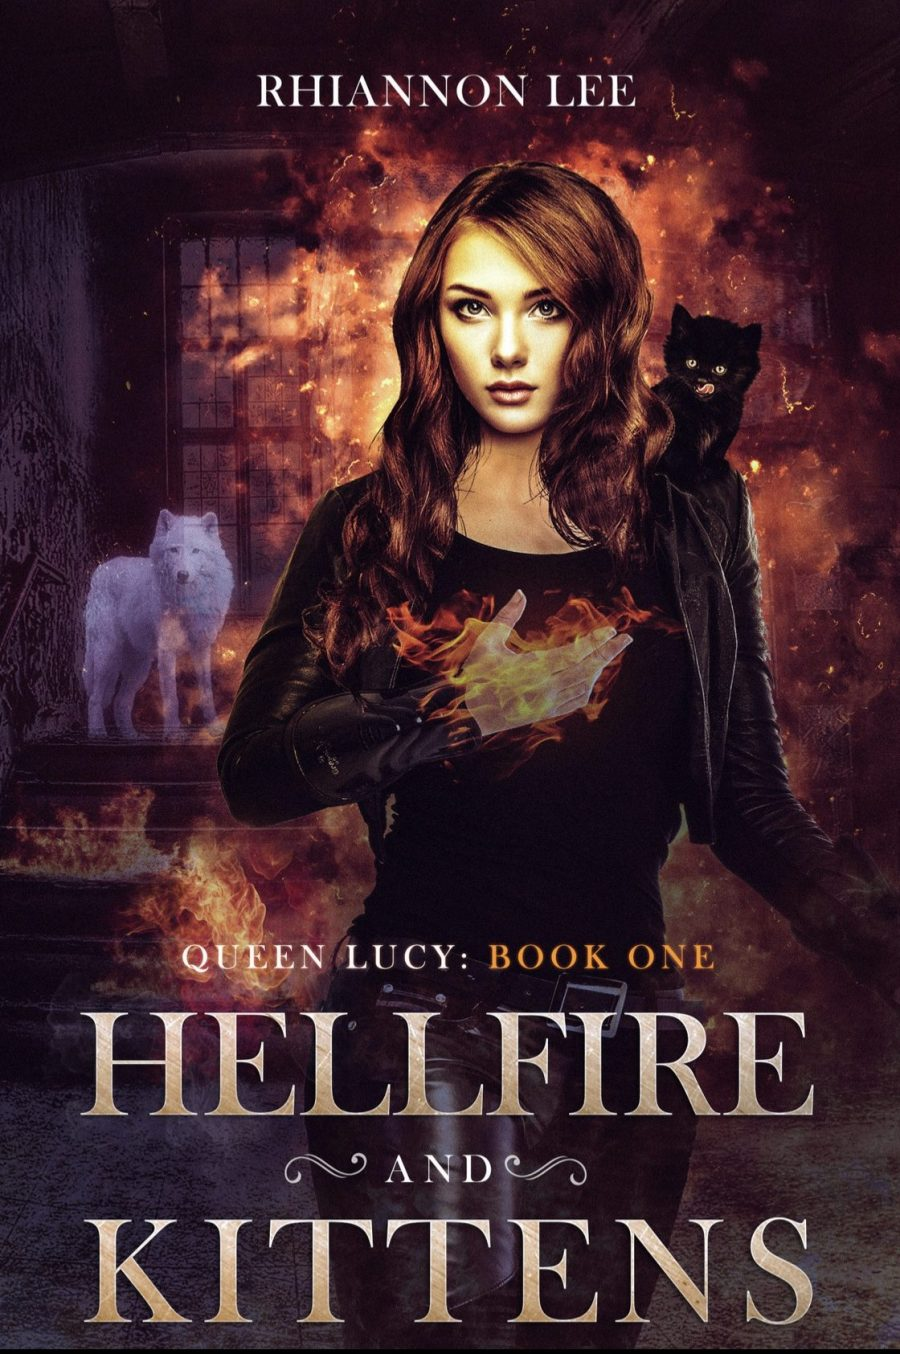 Hellfire and Kittens by Rhiannon Lee – A Book Review